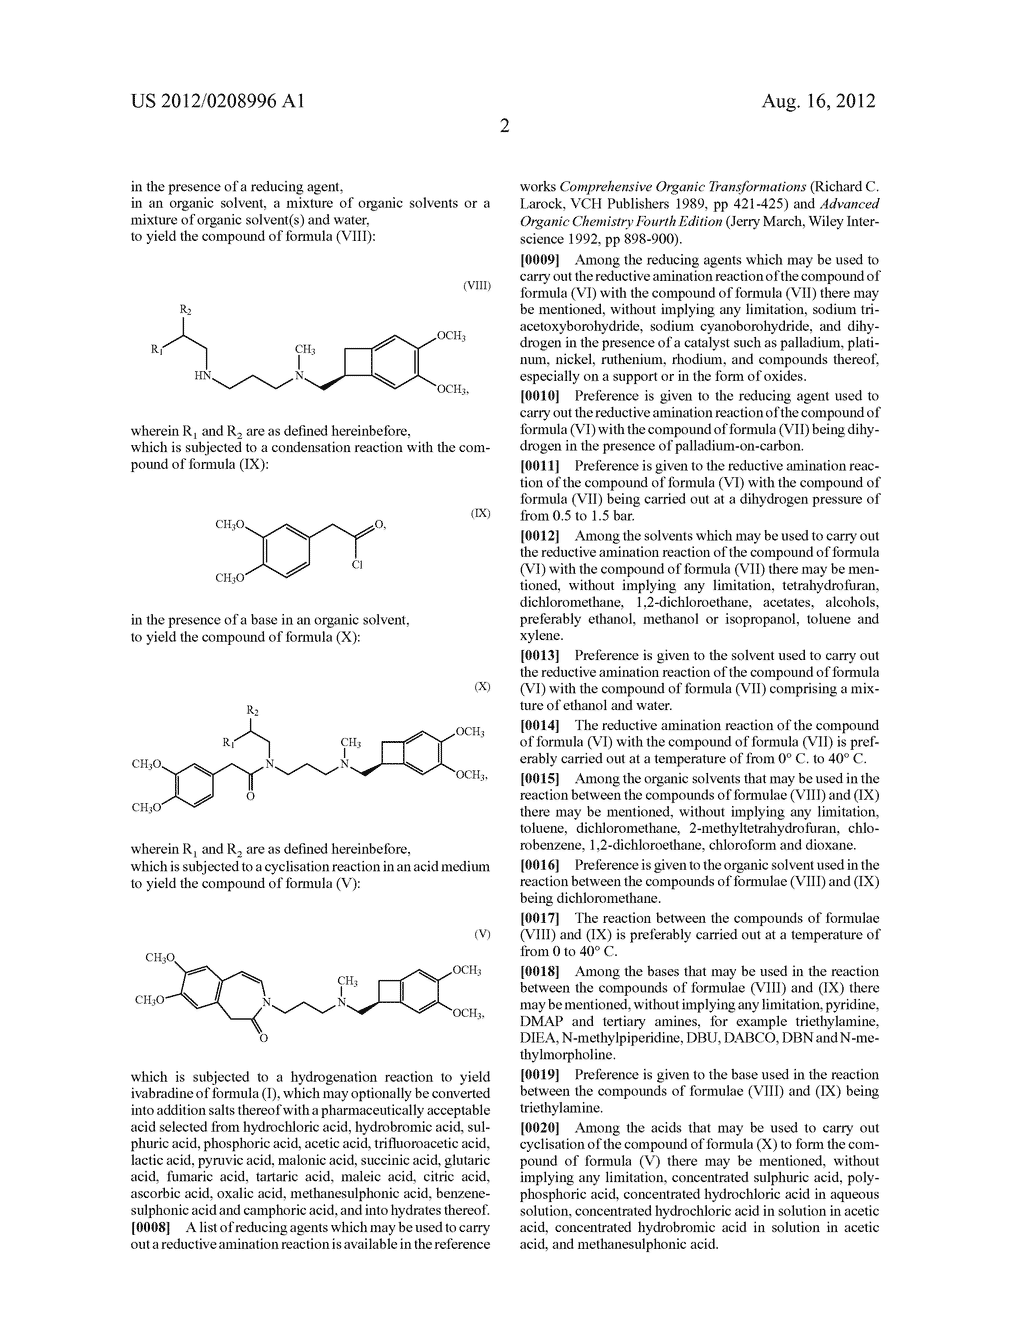 PROCESS FOR THE SYNTHESIS OF IVABRADINE AND ADDITION SALTS THEREOF WITH A     PHARMACEUTICALLY ACCEPTABLE ACID - diagram, schematic, and image 03